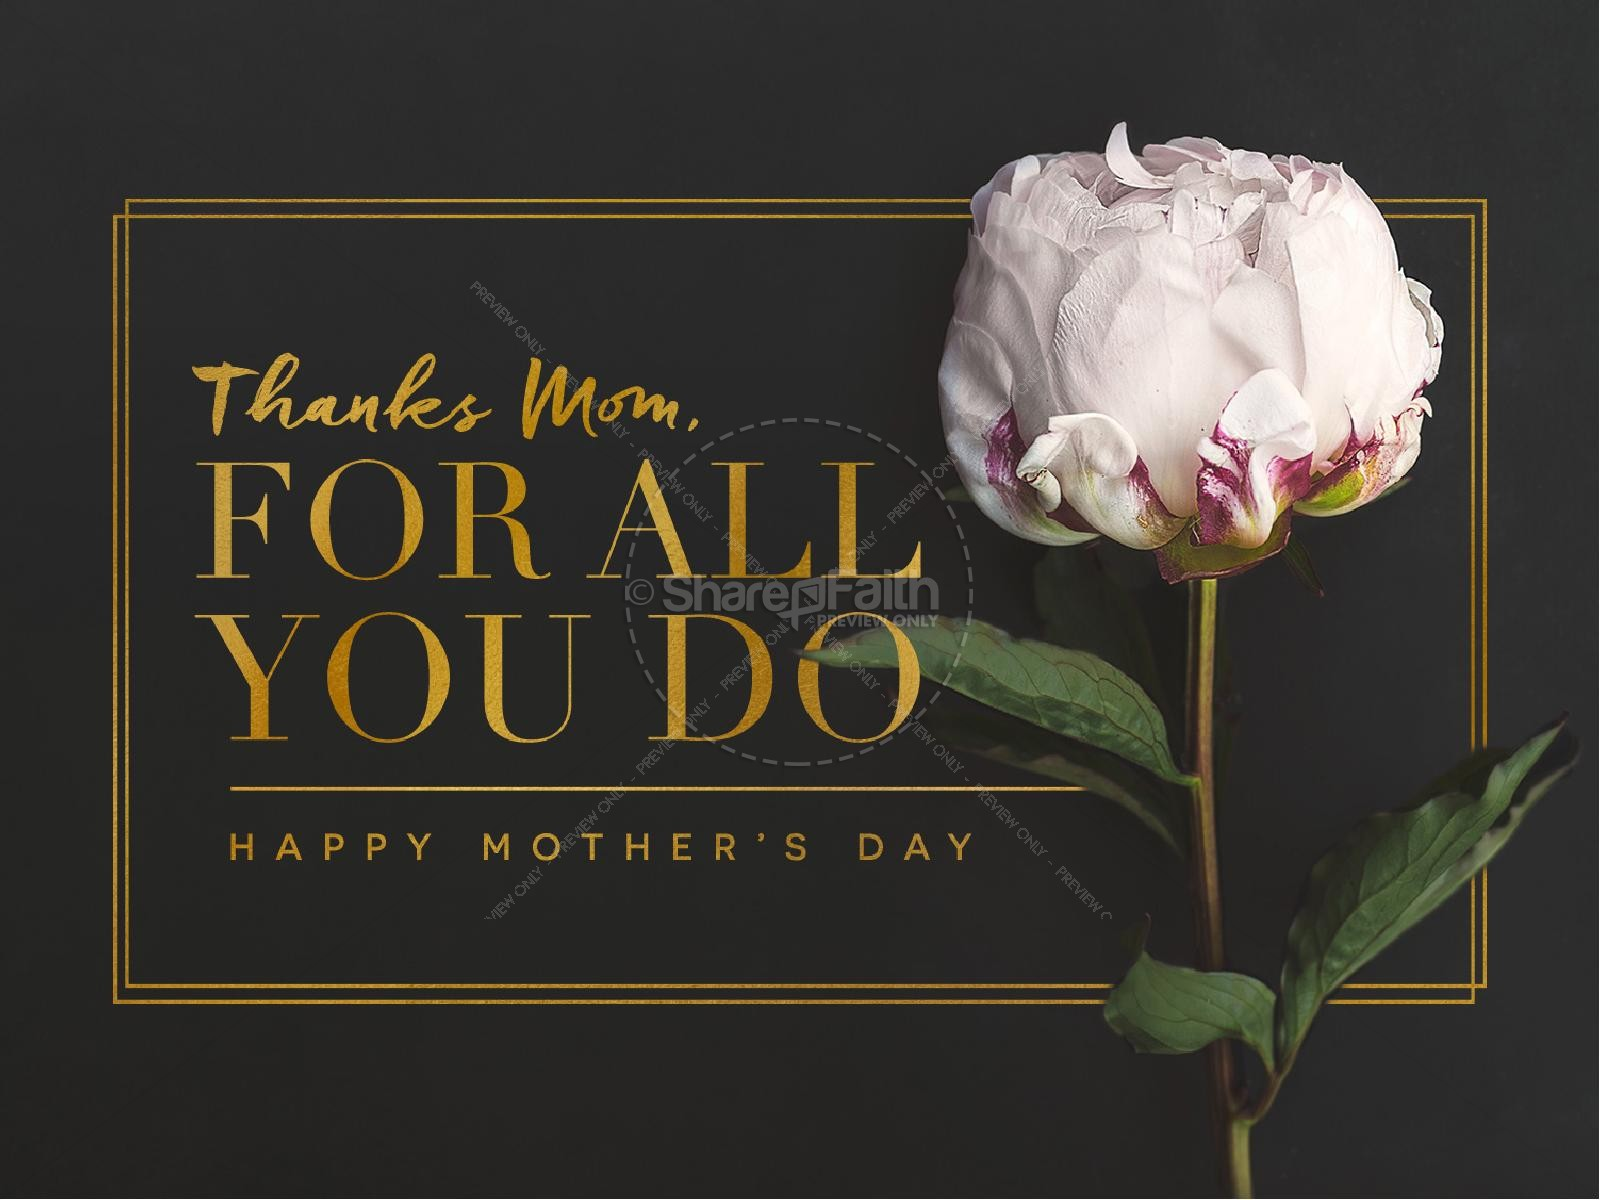 Church flower clipart church flower image church flowers graphic - Thanks Mom For All You Do Mother S Day Church Powerpoint